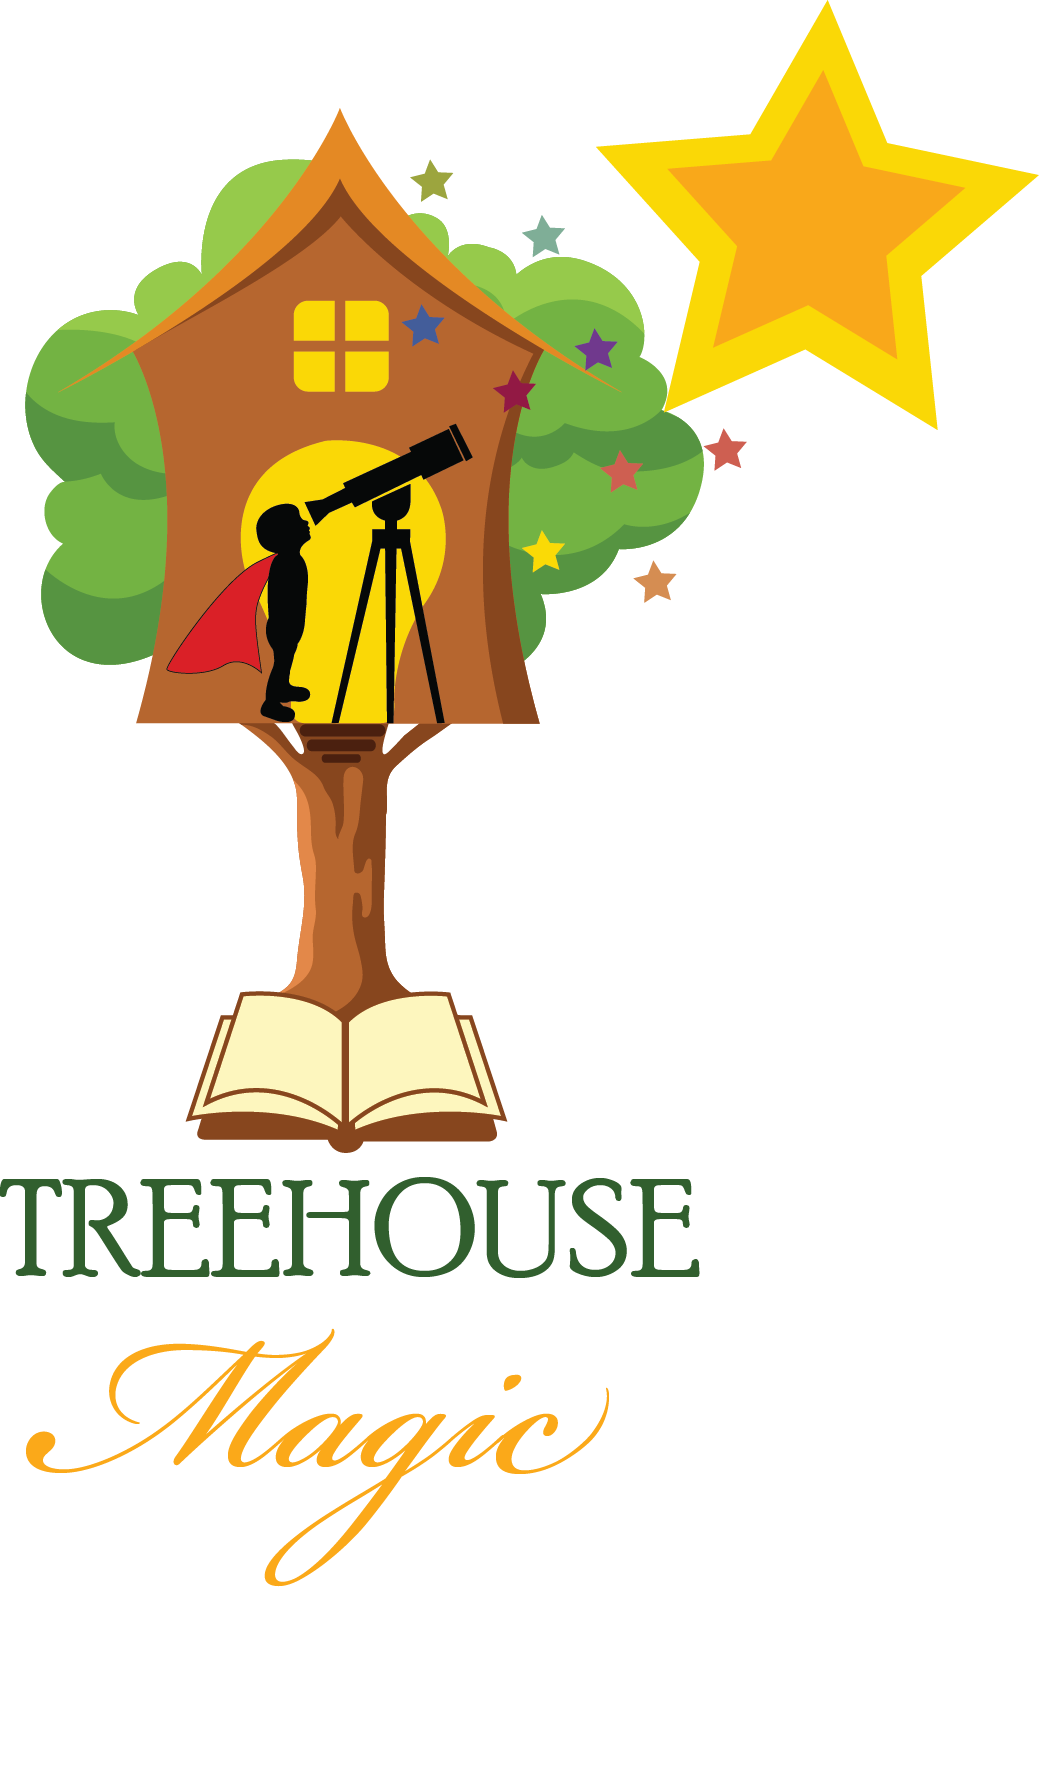 Magic tree house clipart picture library library Treehouse Magic picture library library